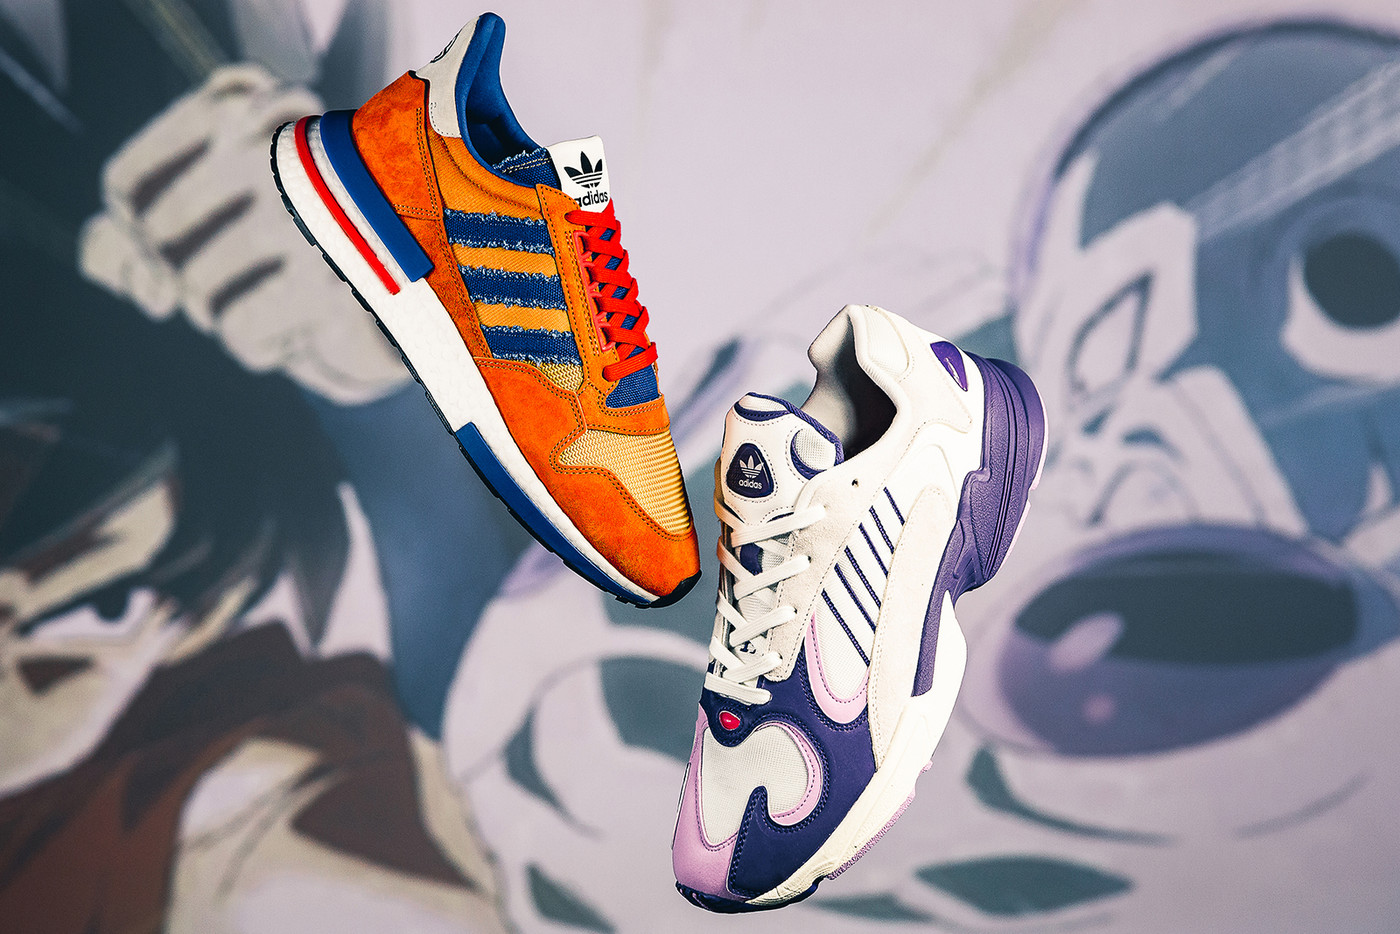 7e527cd9fb47a0 adidas dragon ball z shoes. Now that the Adidas Dragon Ball Z collaboration  is confirmed